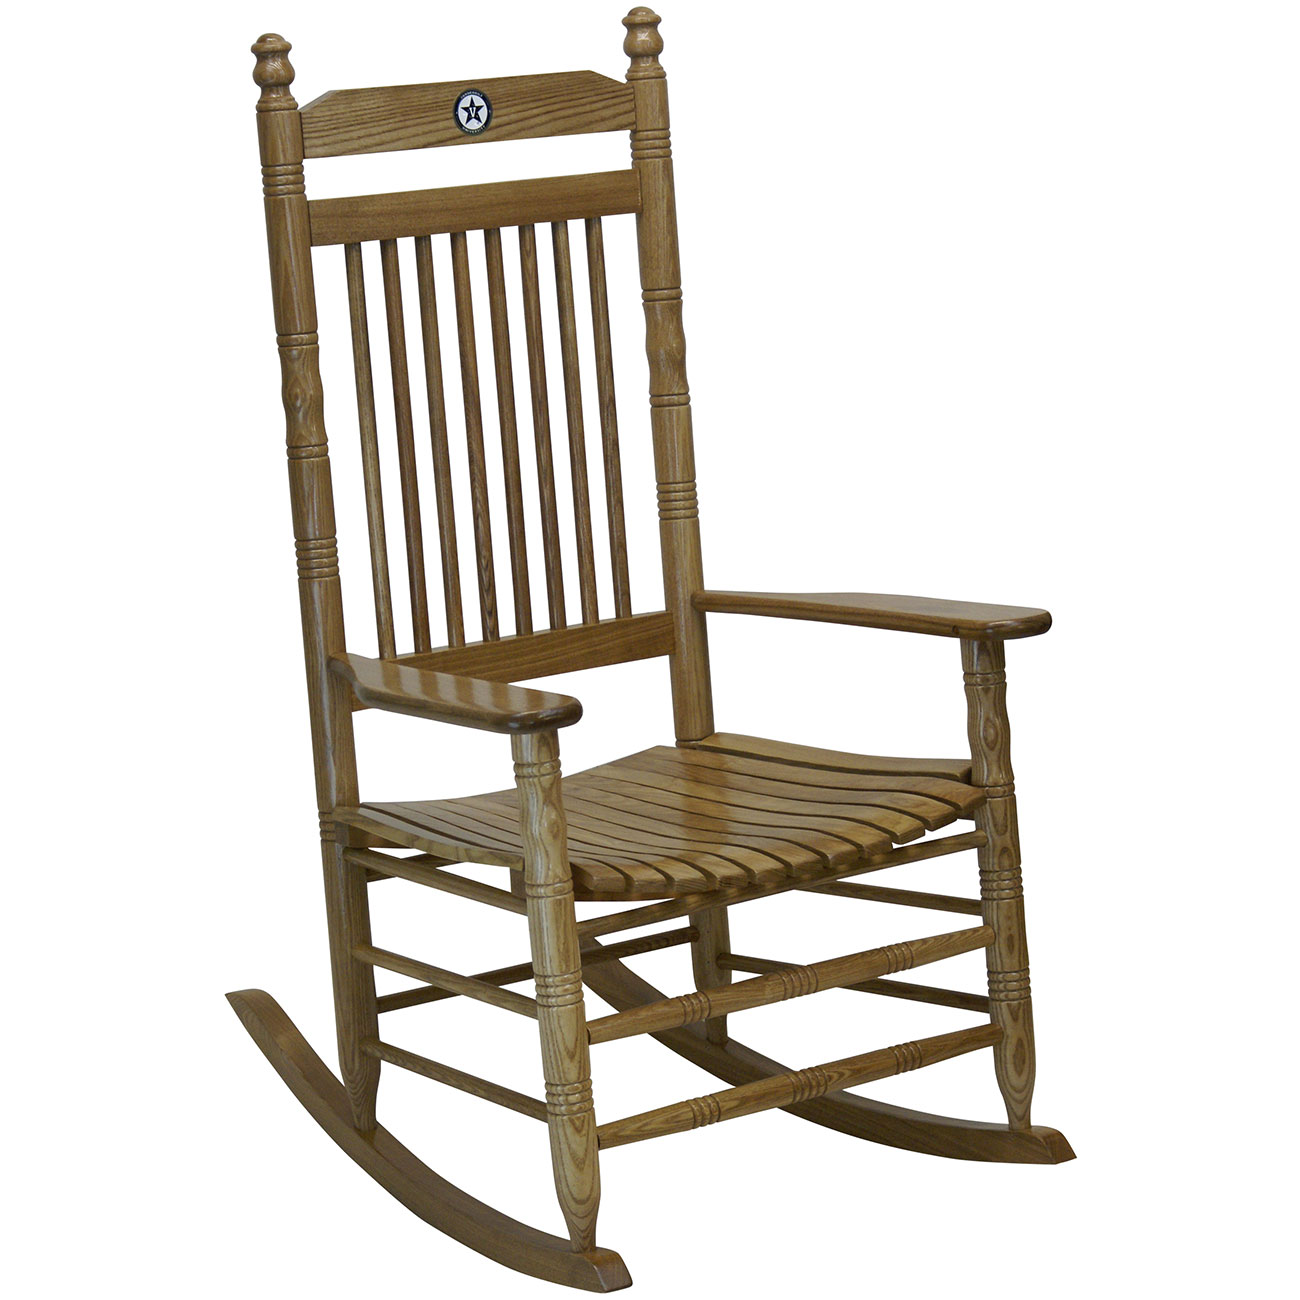 Vanderbilt Furniture Shopcrackerbarrelcom Hardwood Rocking Chair